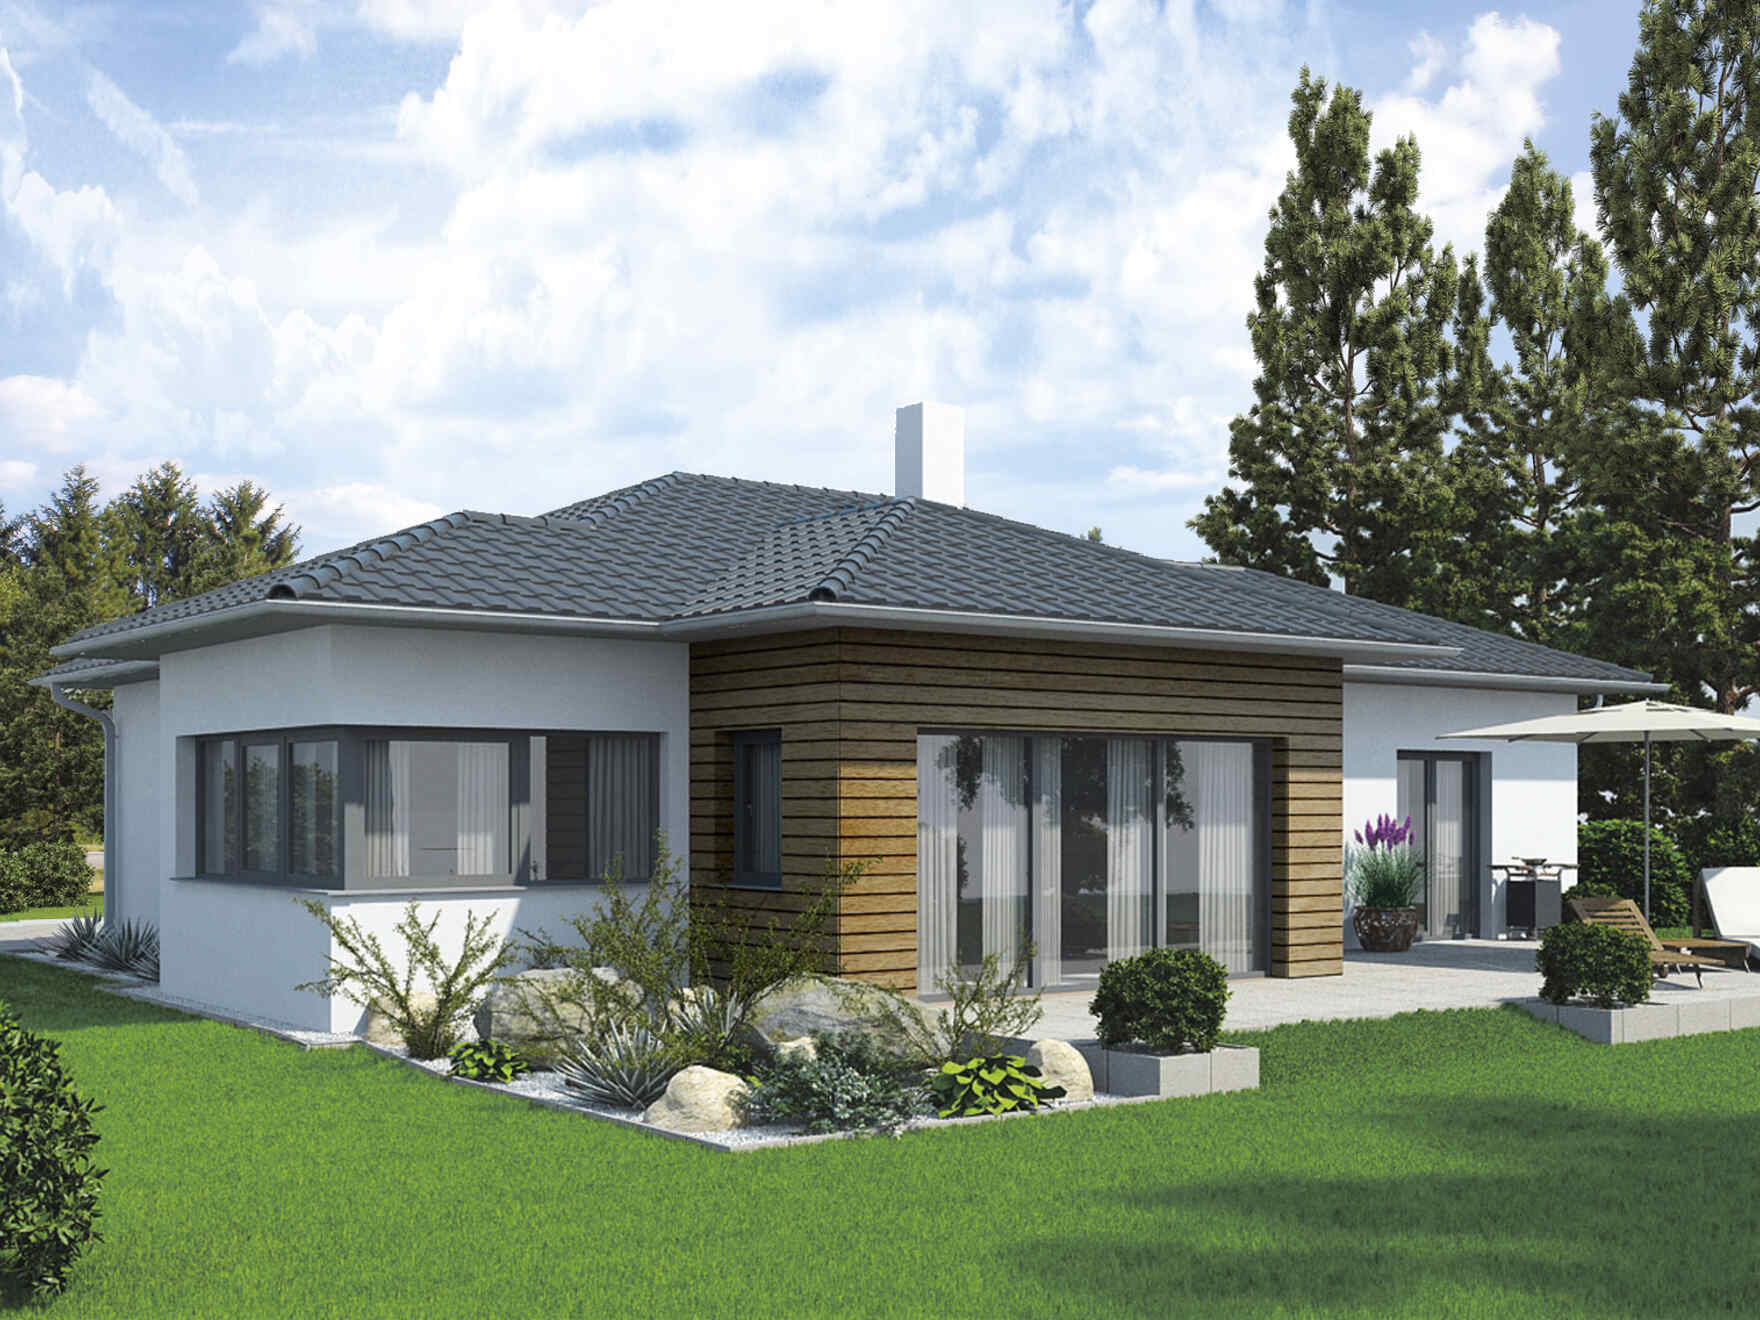 Bungalow S141 2 Appartements  Concept Bungalow  A New